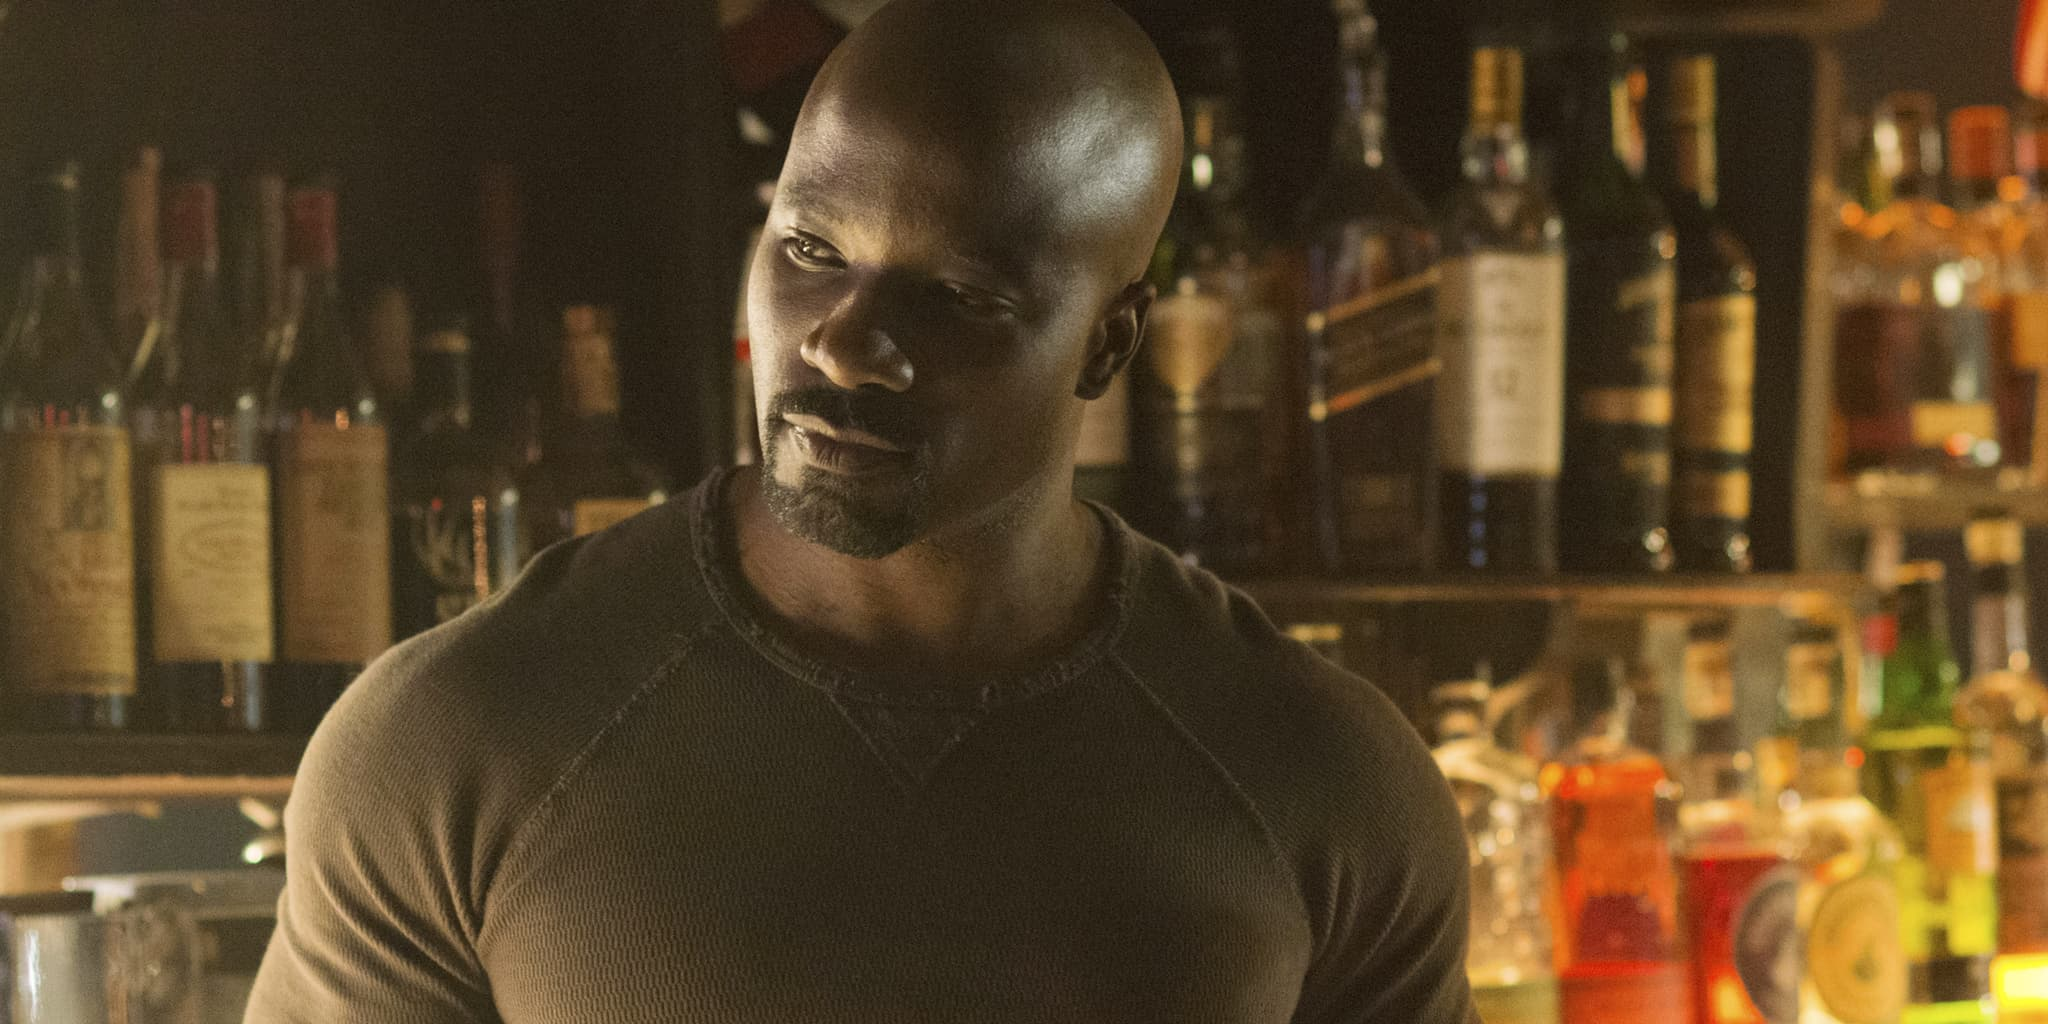 Luke Cage brings hip-hop in the Marvel Universe Photo Credit: inverse.com